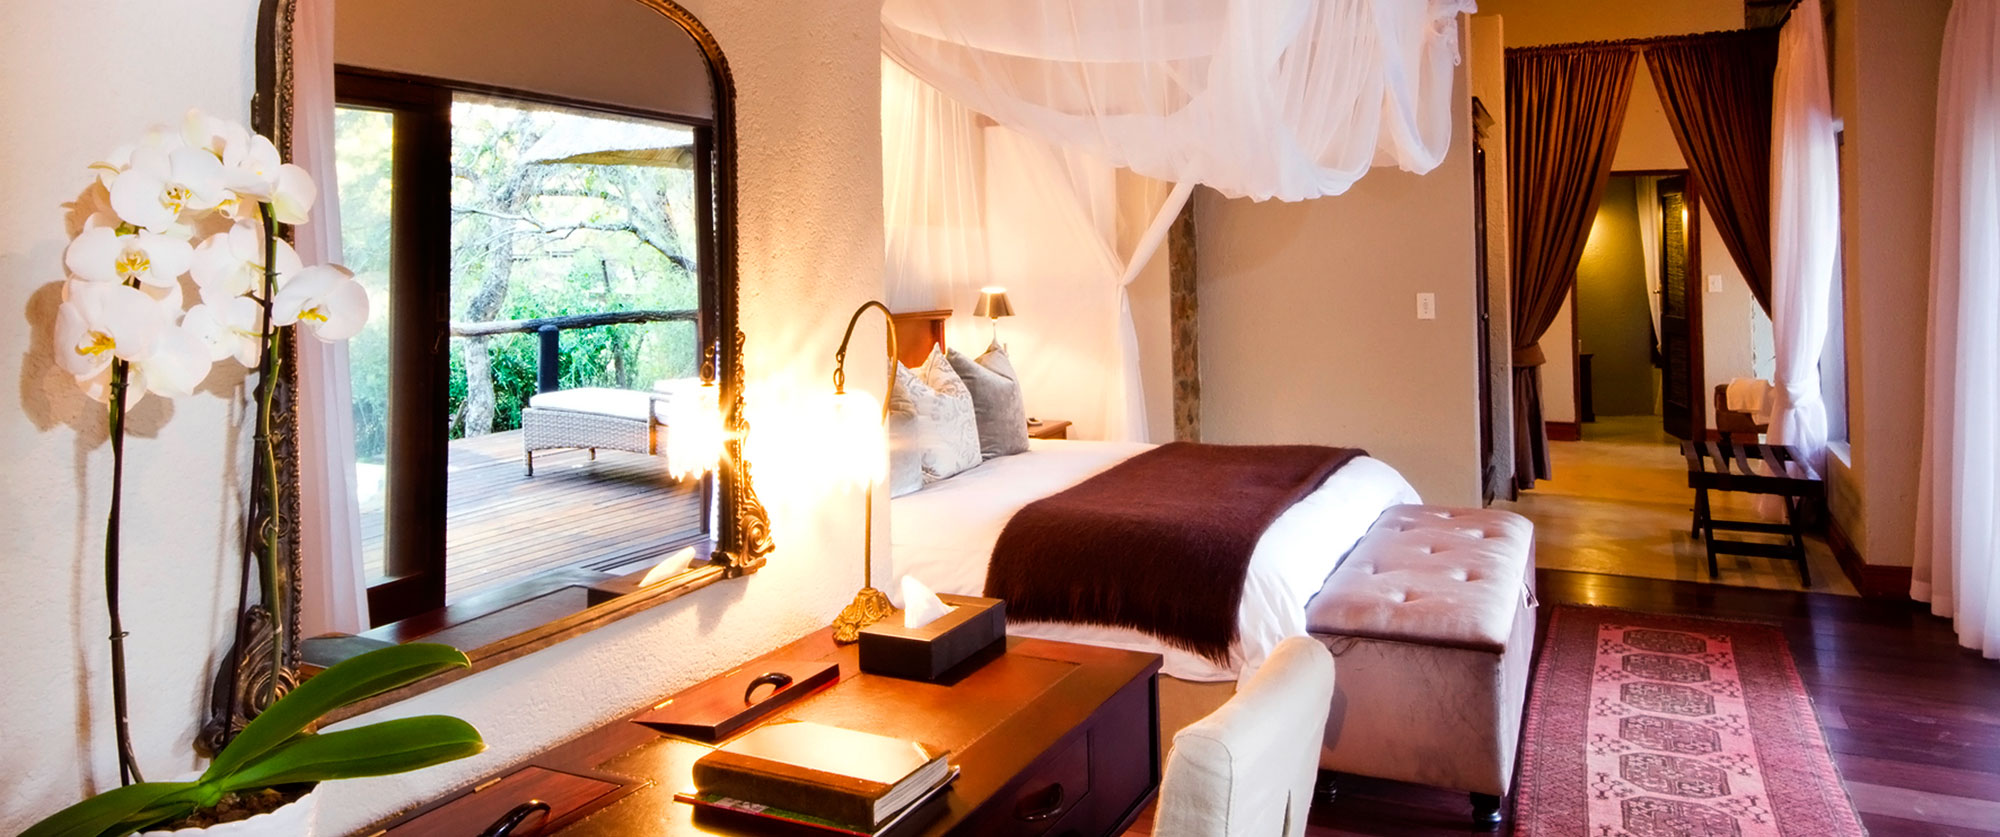 Romantic South Africa Vacation - Dulini Lodge South Africa safari